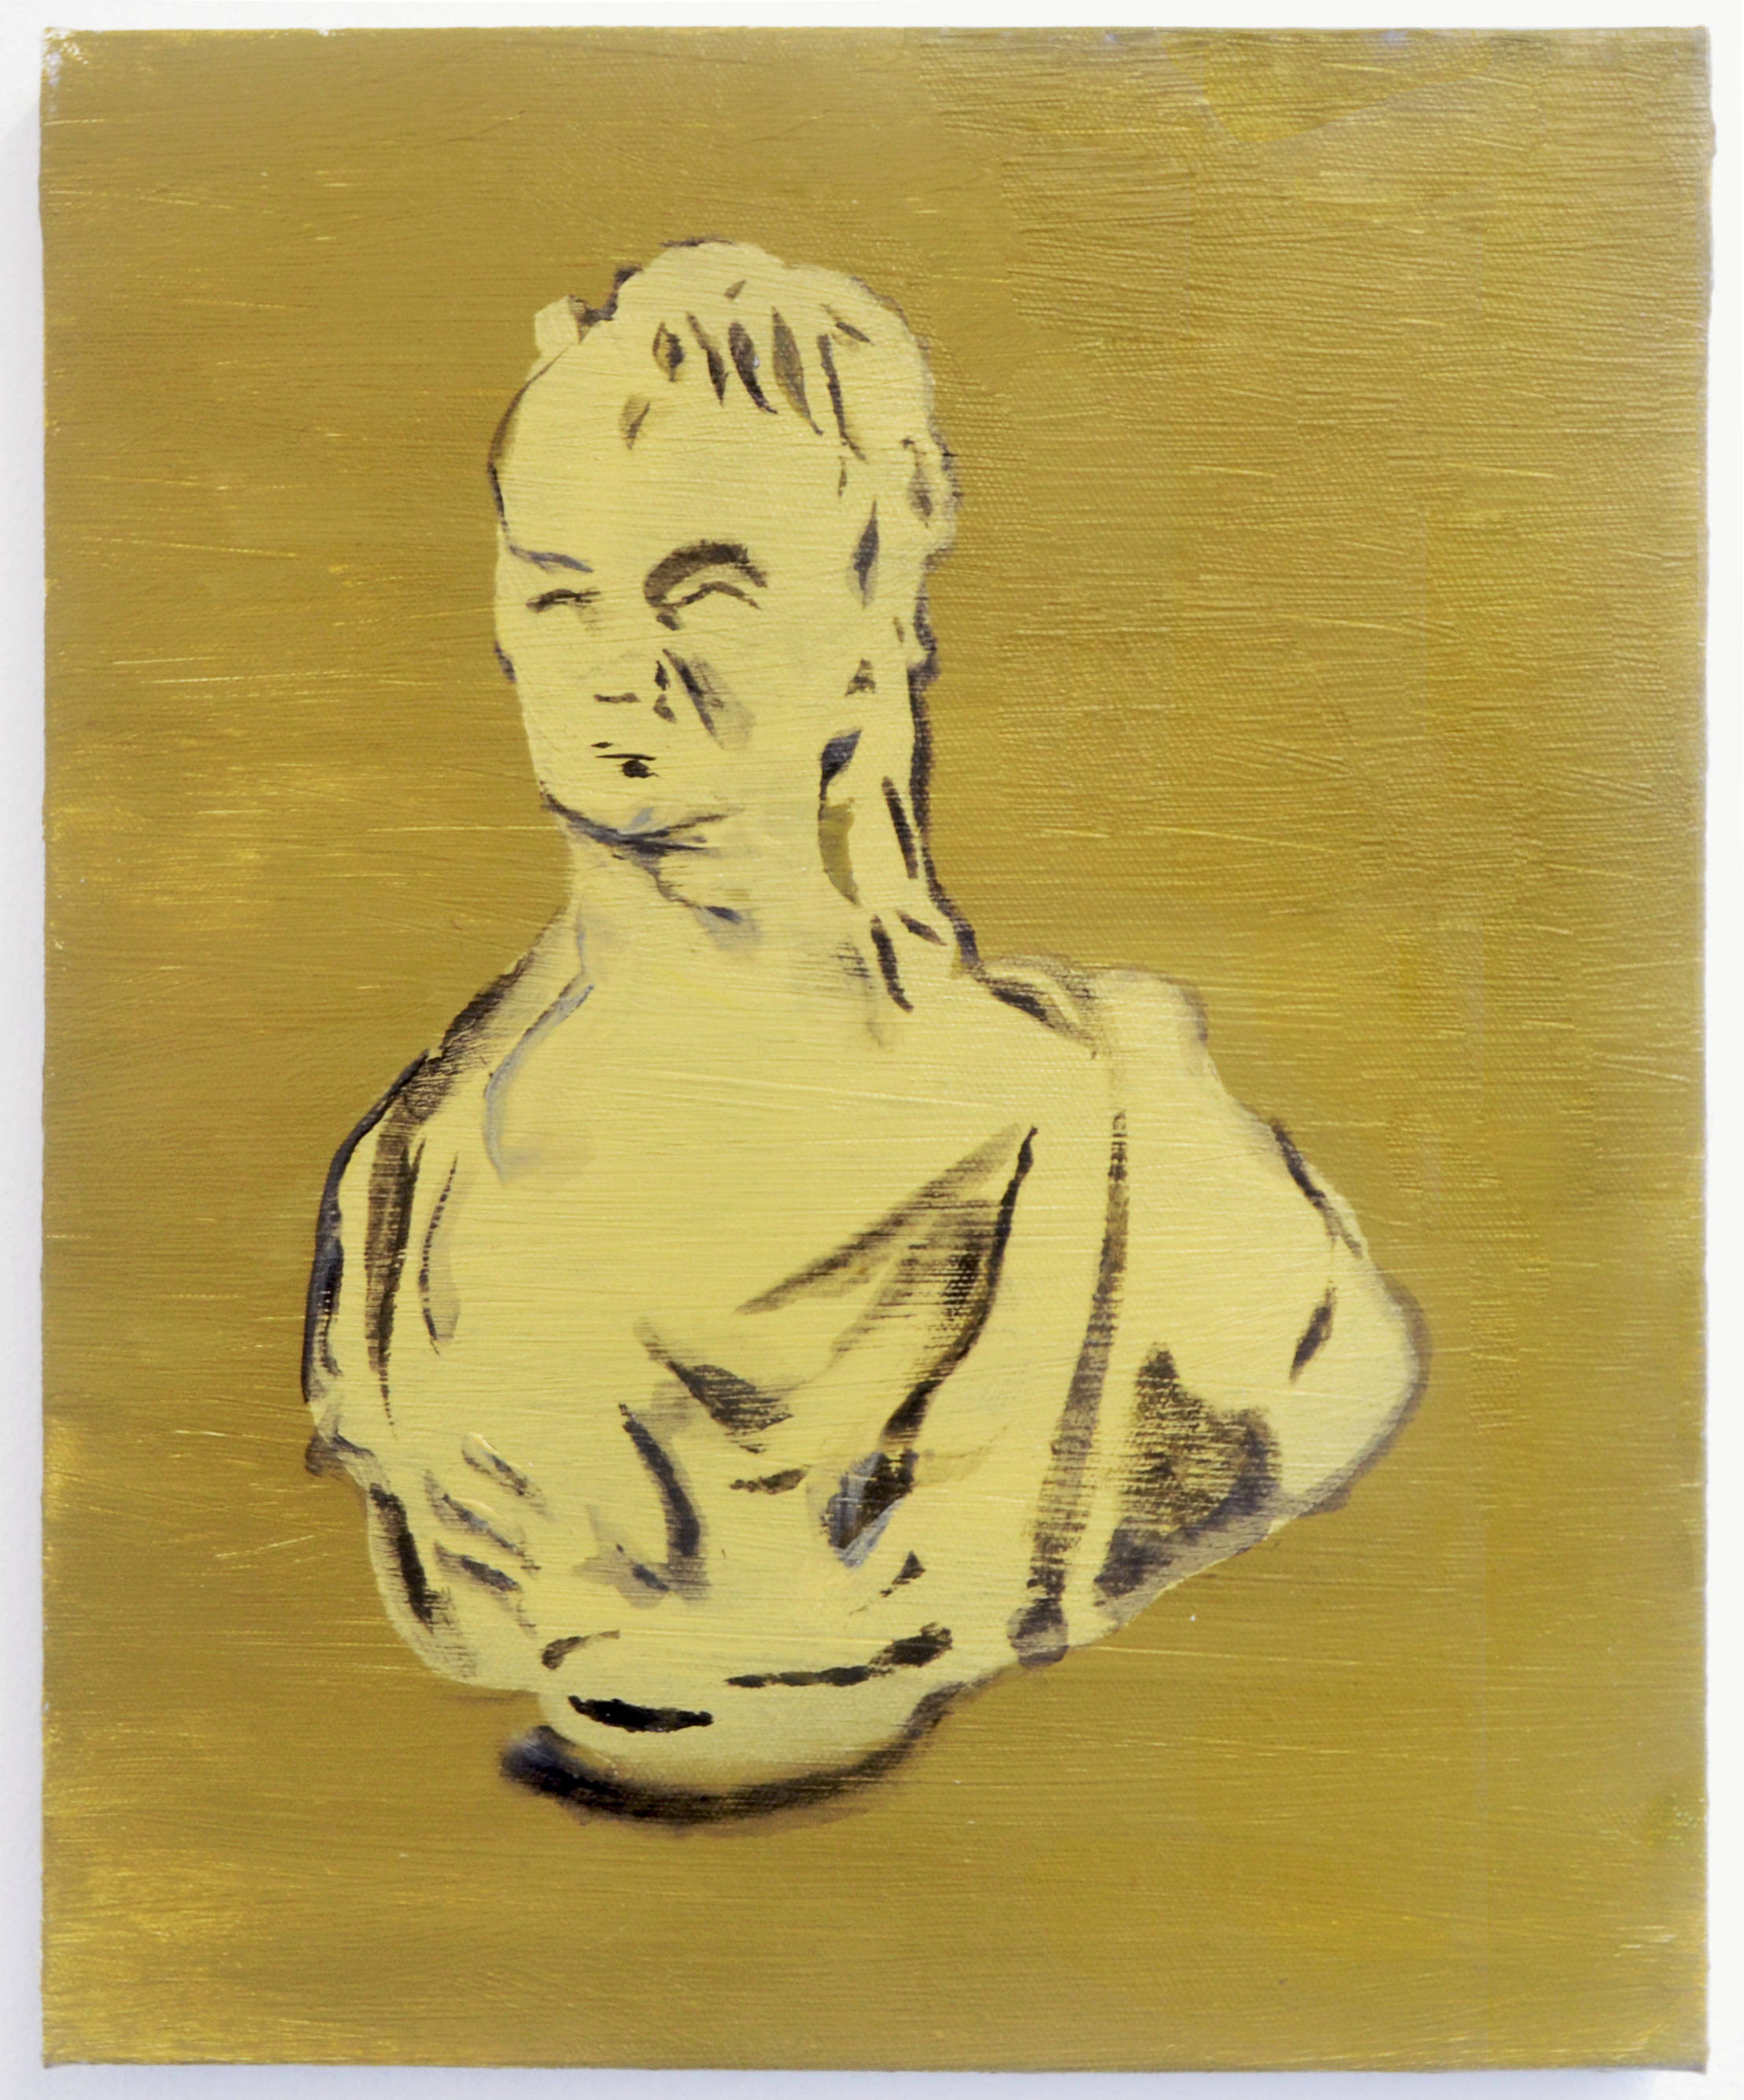 Galerie L'Inlassable, Matthew Cole, Bust, 2019, acrylic on canvas, 30 x 24 cm / 11,7 x 9,3 inches, Paris